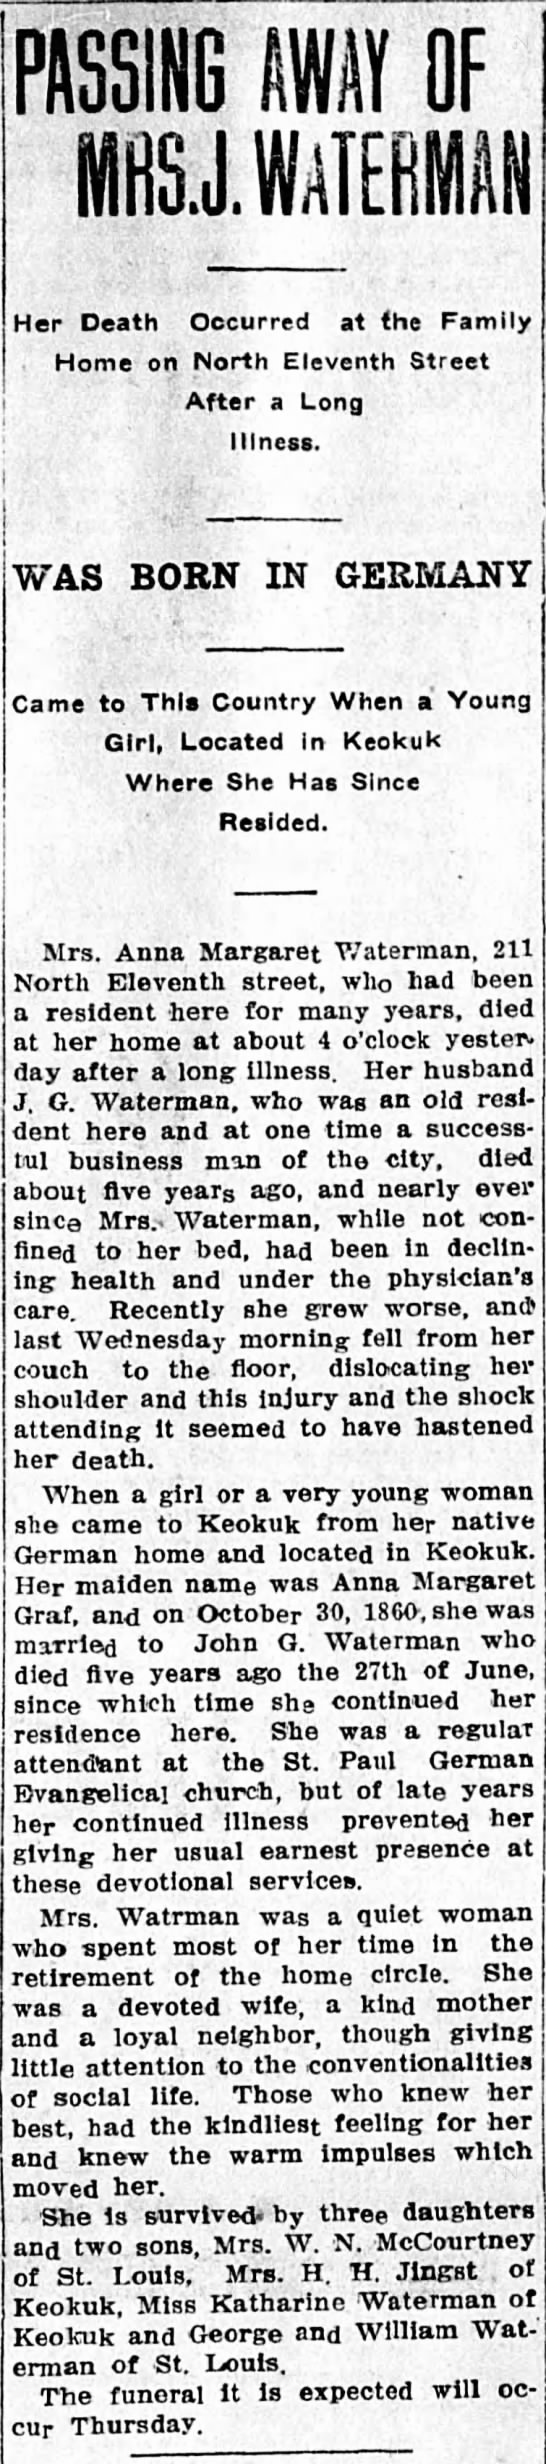 Obituary: Waterman, Anna Margaret (nee Graf) d. 1914 - PASSING AWAY OF Her Death Occurred at the...